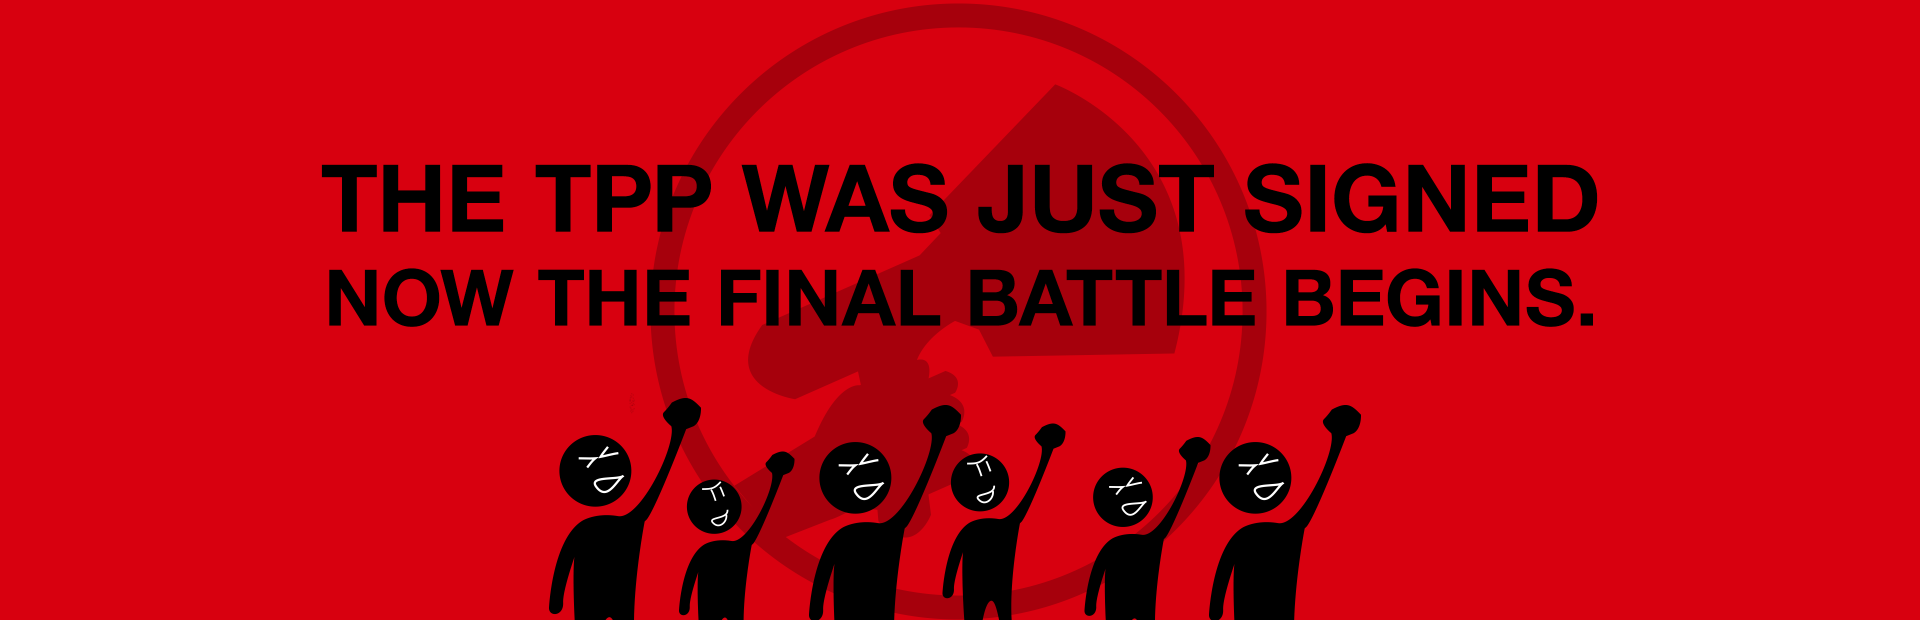 The TPP has been signed - now the final battle begins!